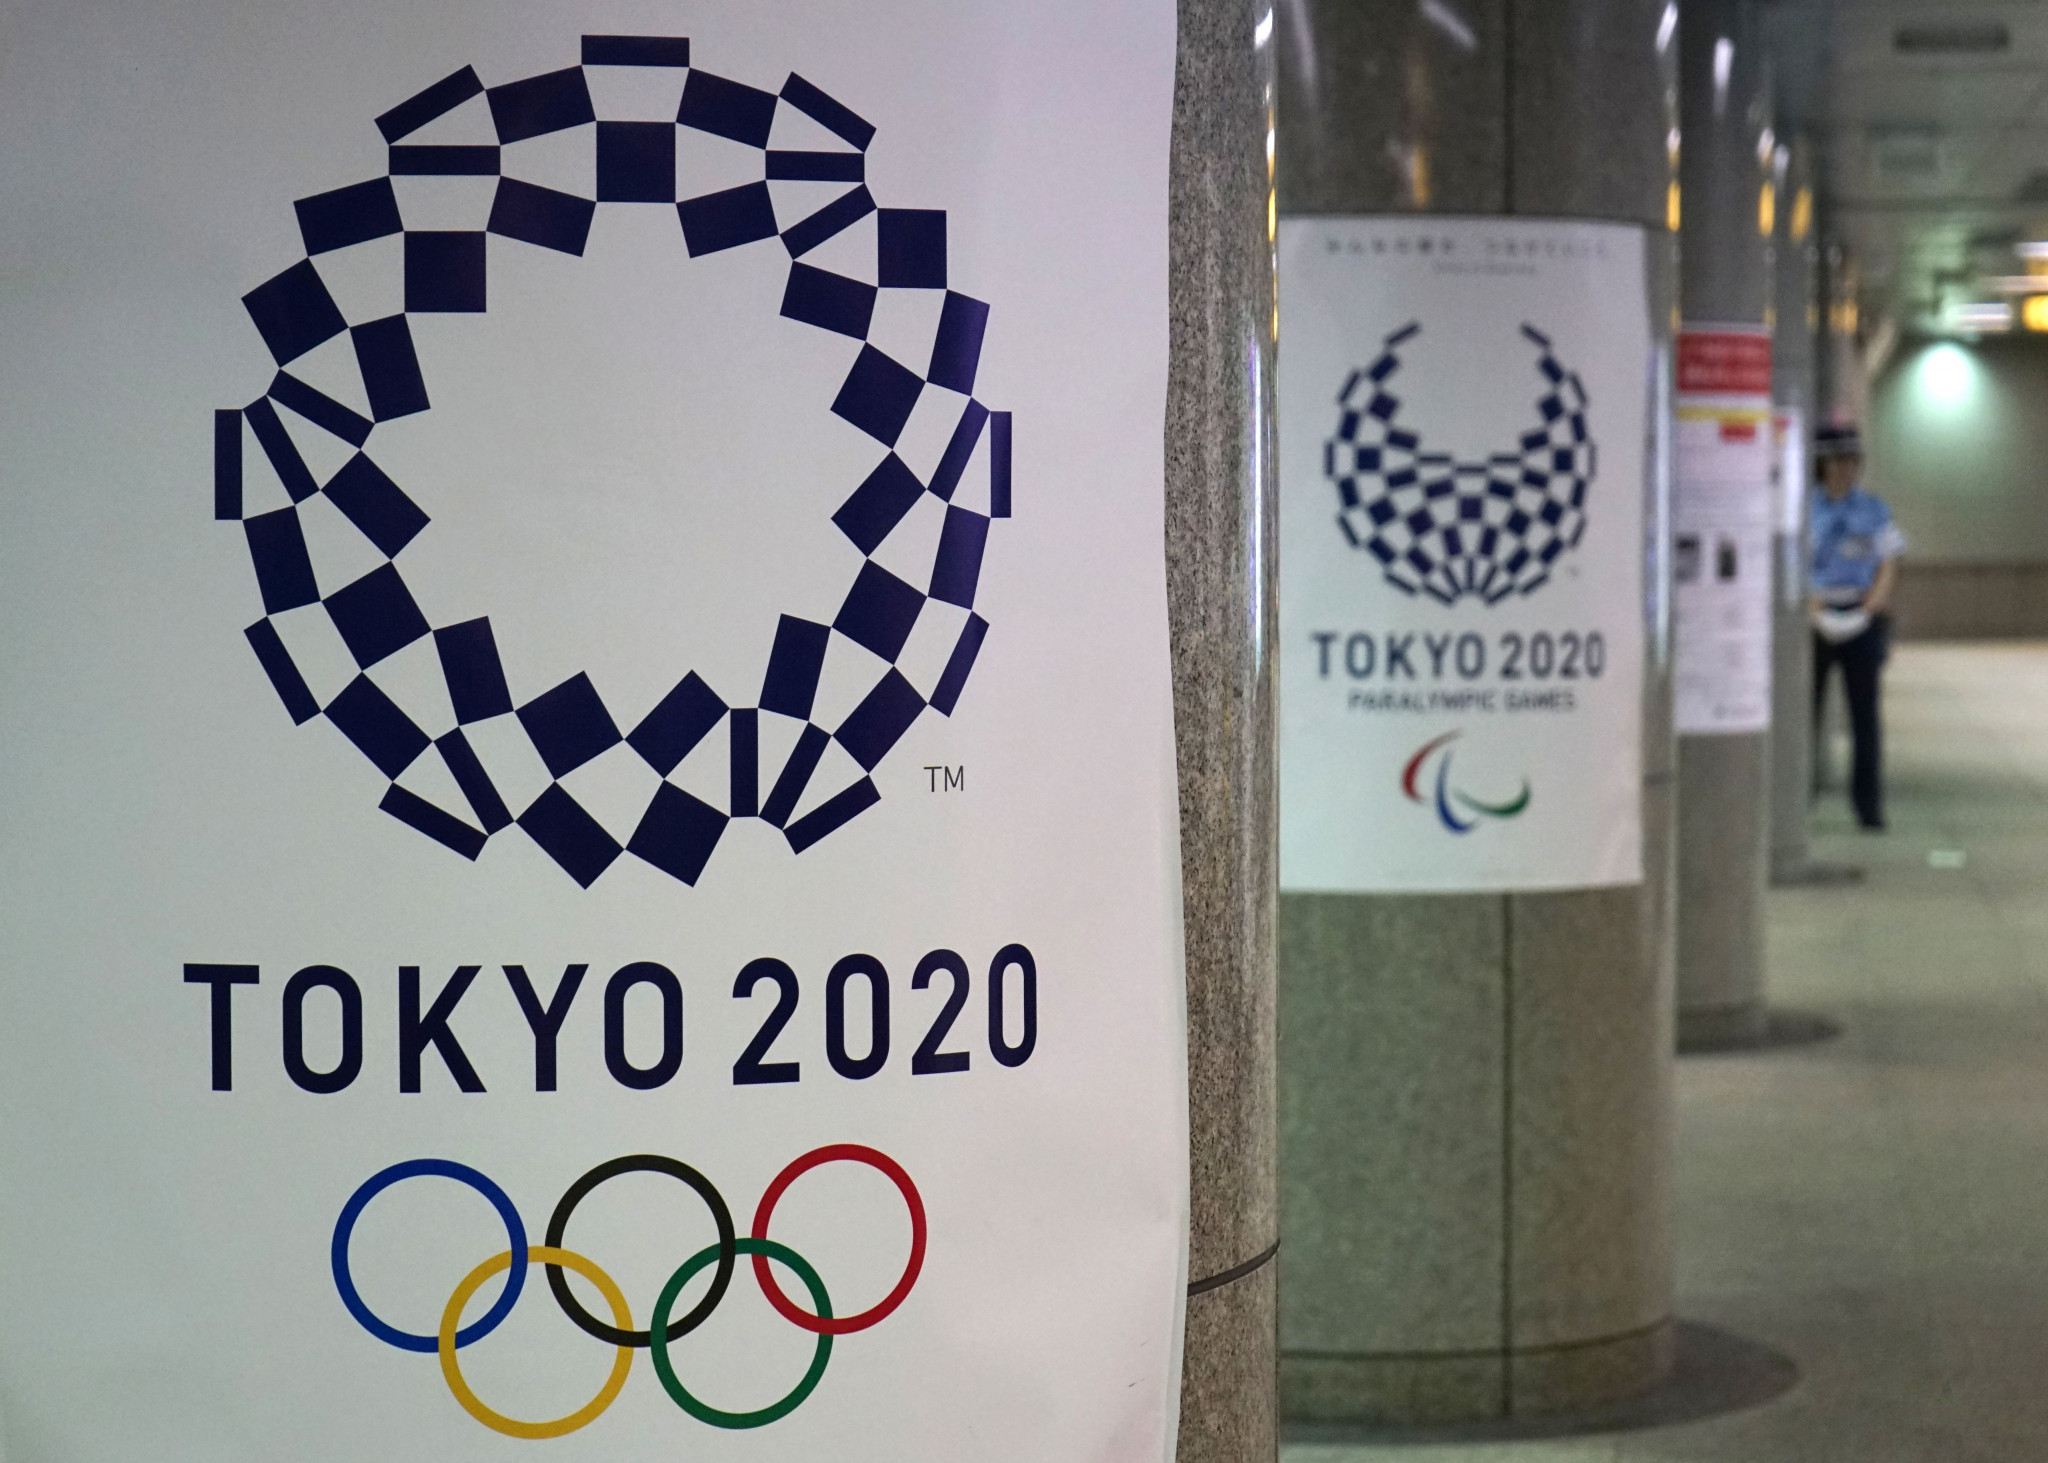 Tokyo 2020 announce no change to budget as third version revealed